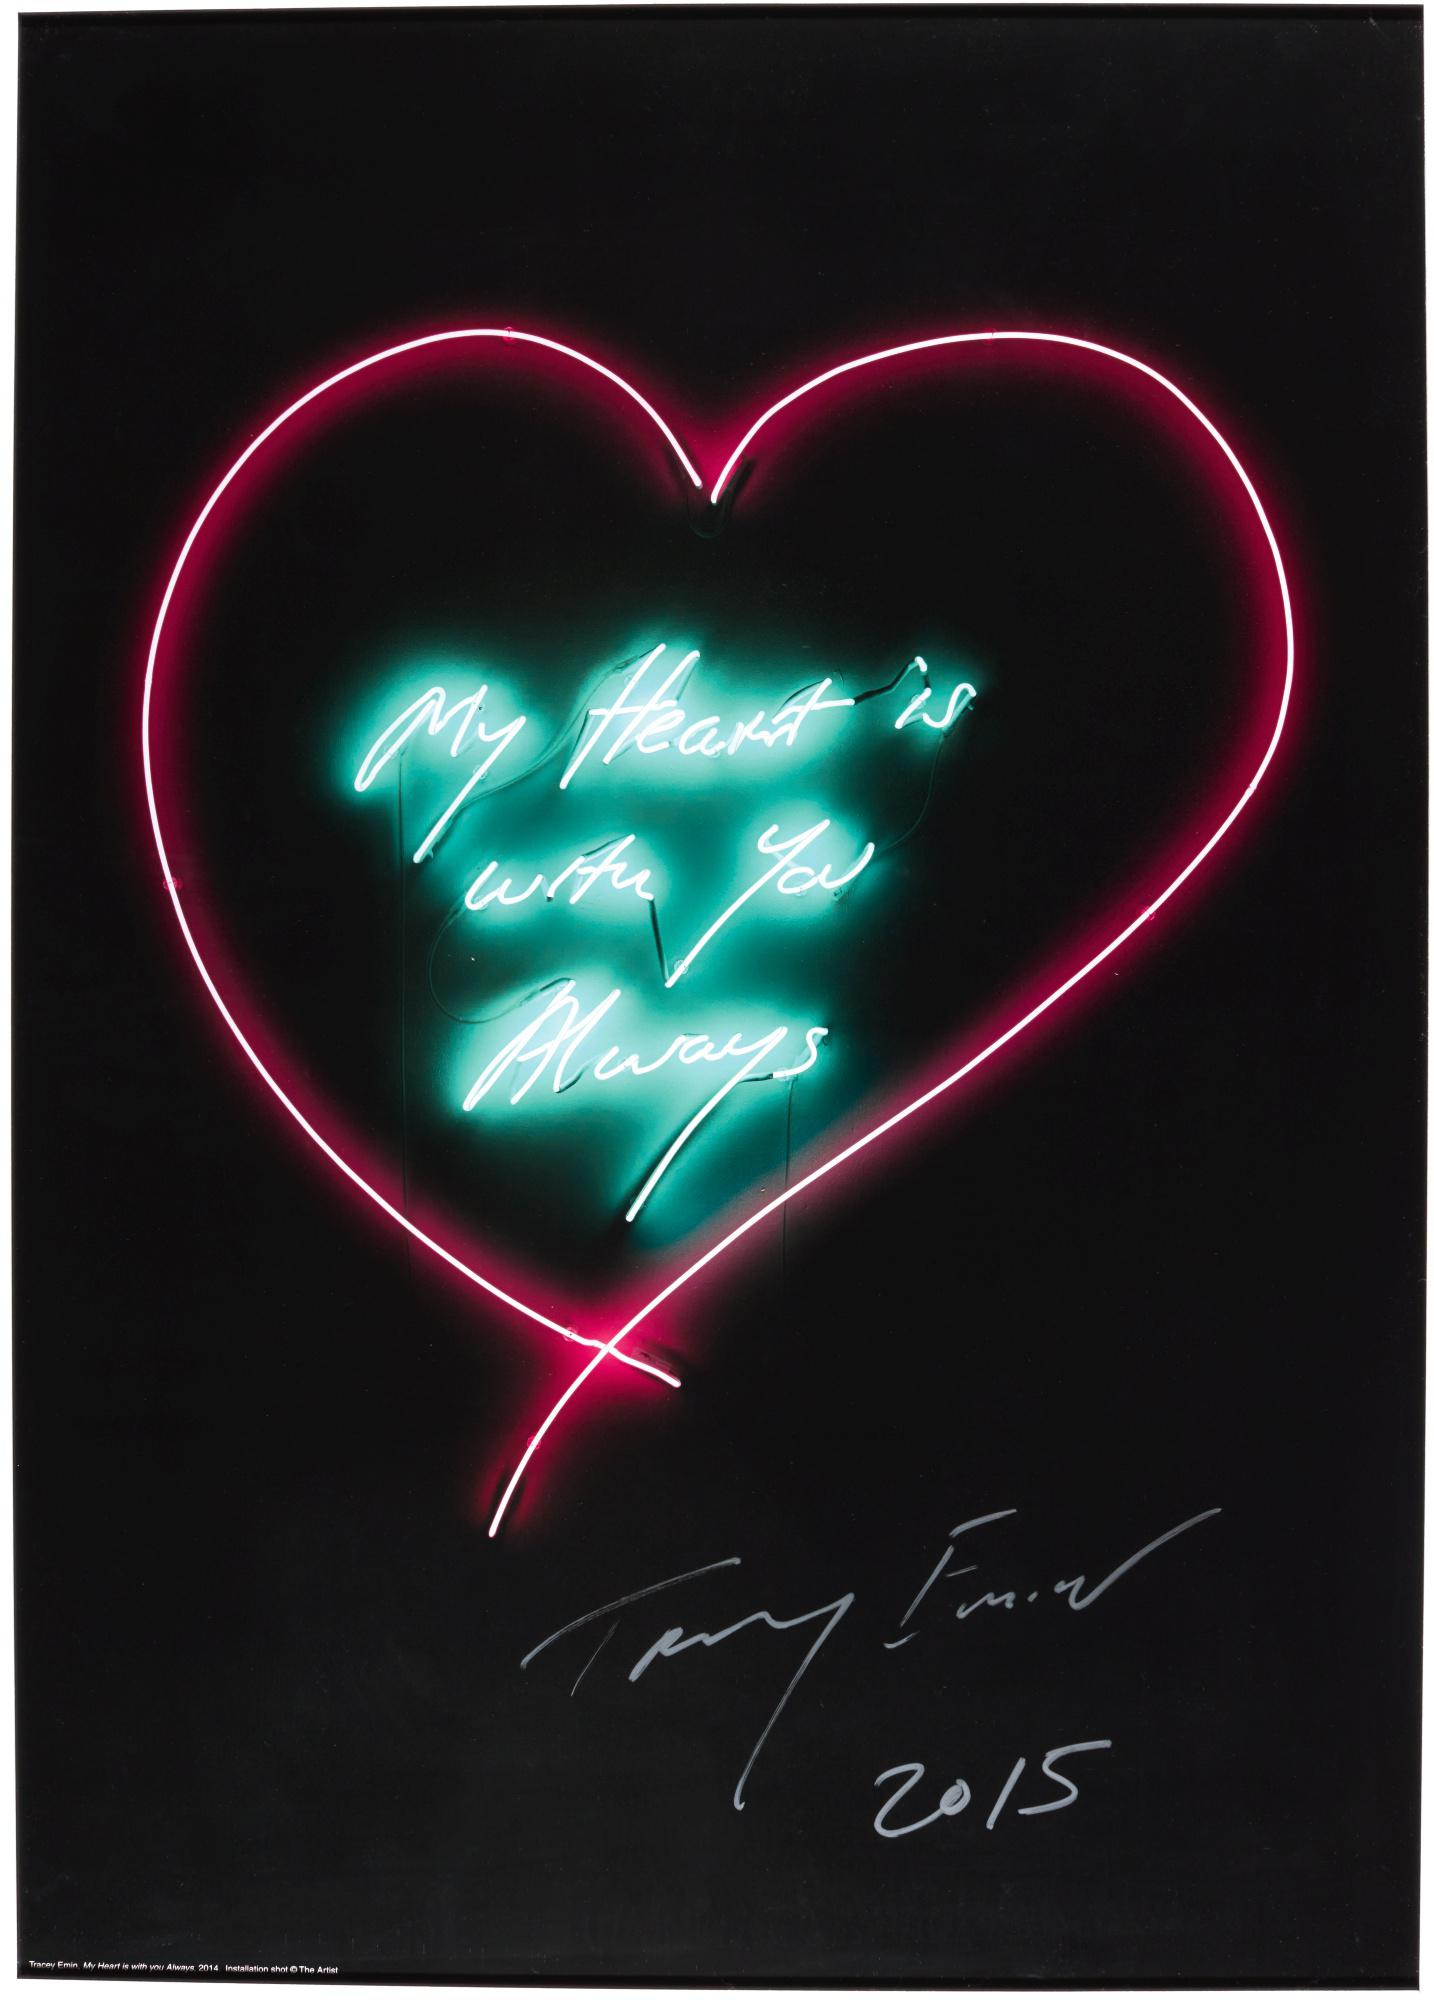 TRACEY EMIN | YOU LOVED ME LIKE A DISTANT STAR; AND MY HEART IS WITH YOU ALWAYS